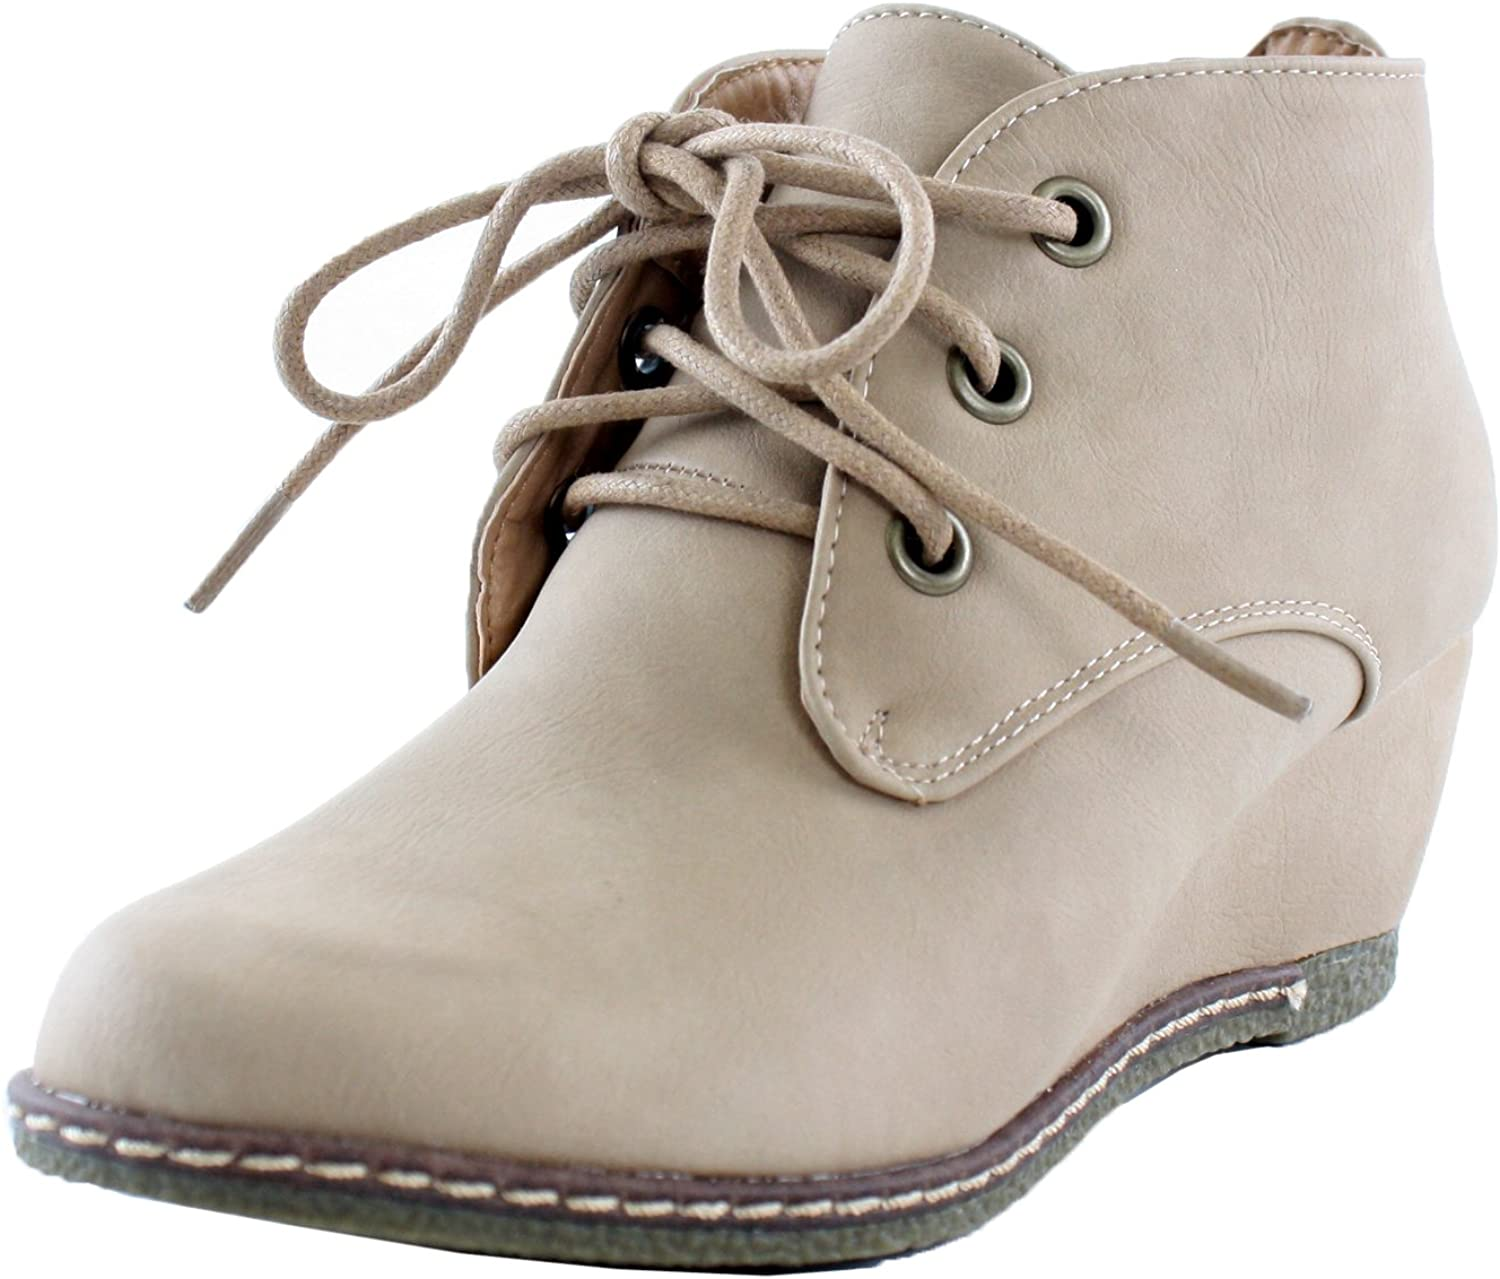 Nature Breeze Women's Lace Up Faux Leather Ankle Wedge Booties Premium Beige